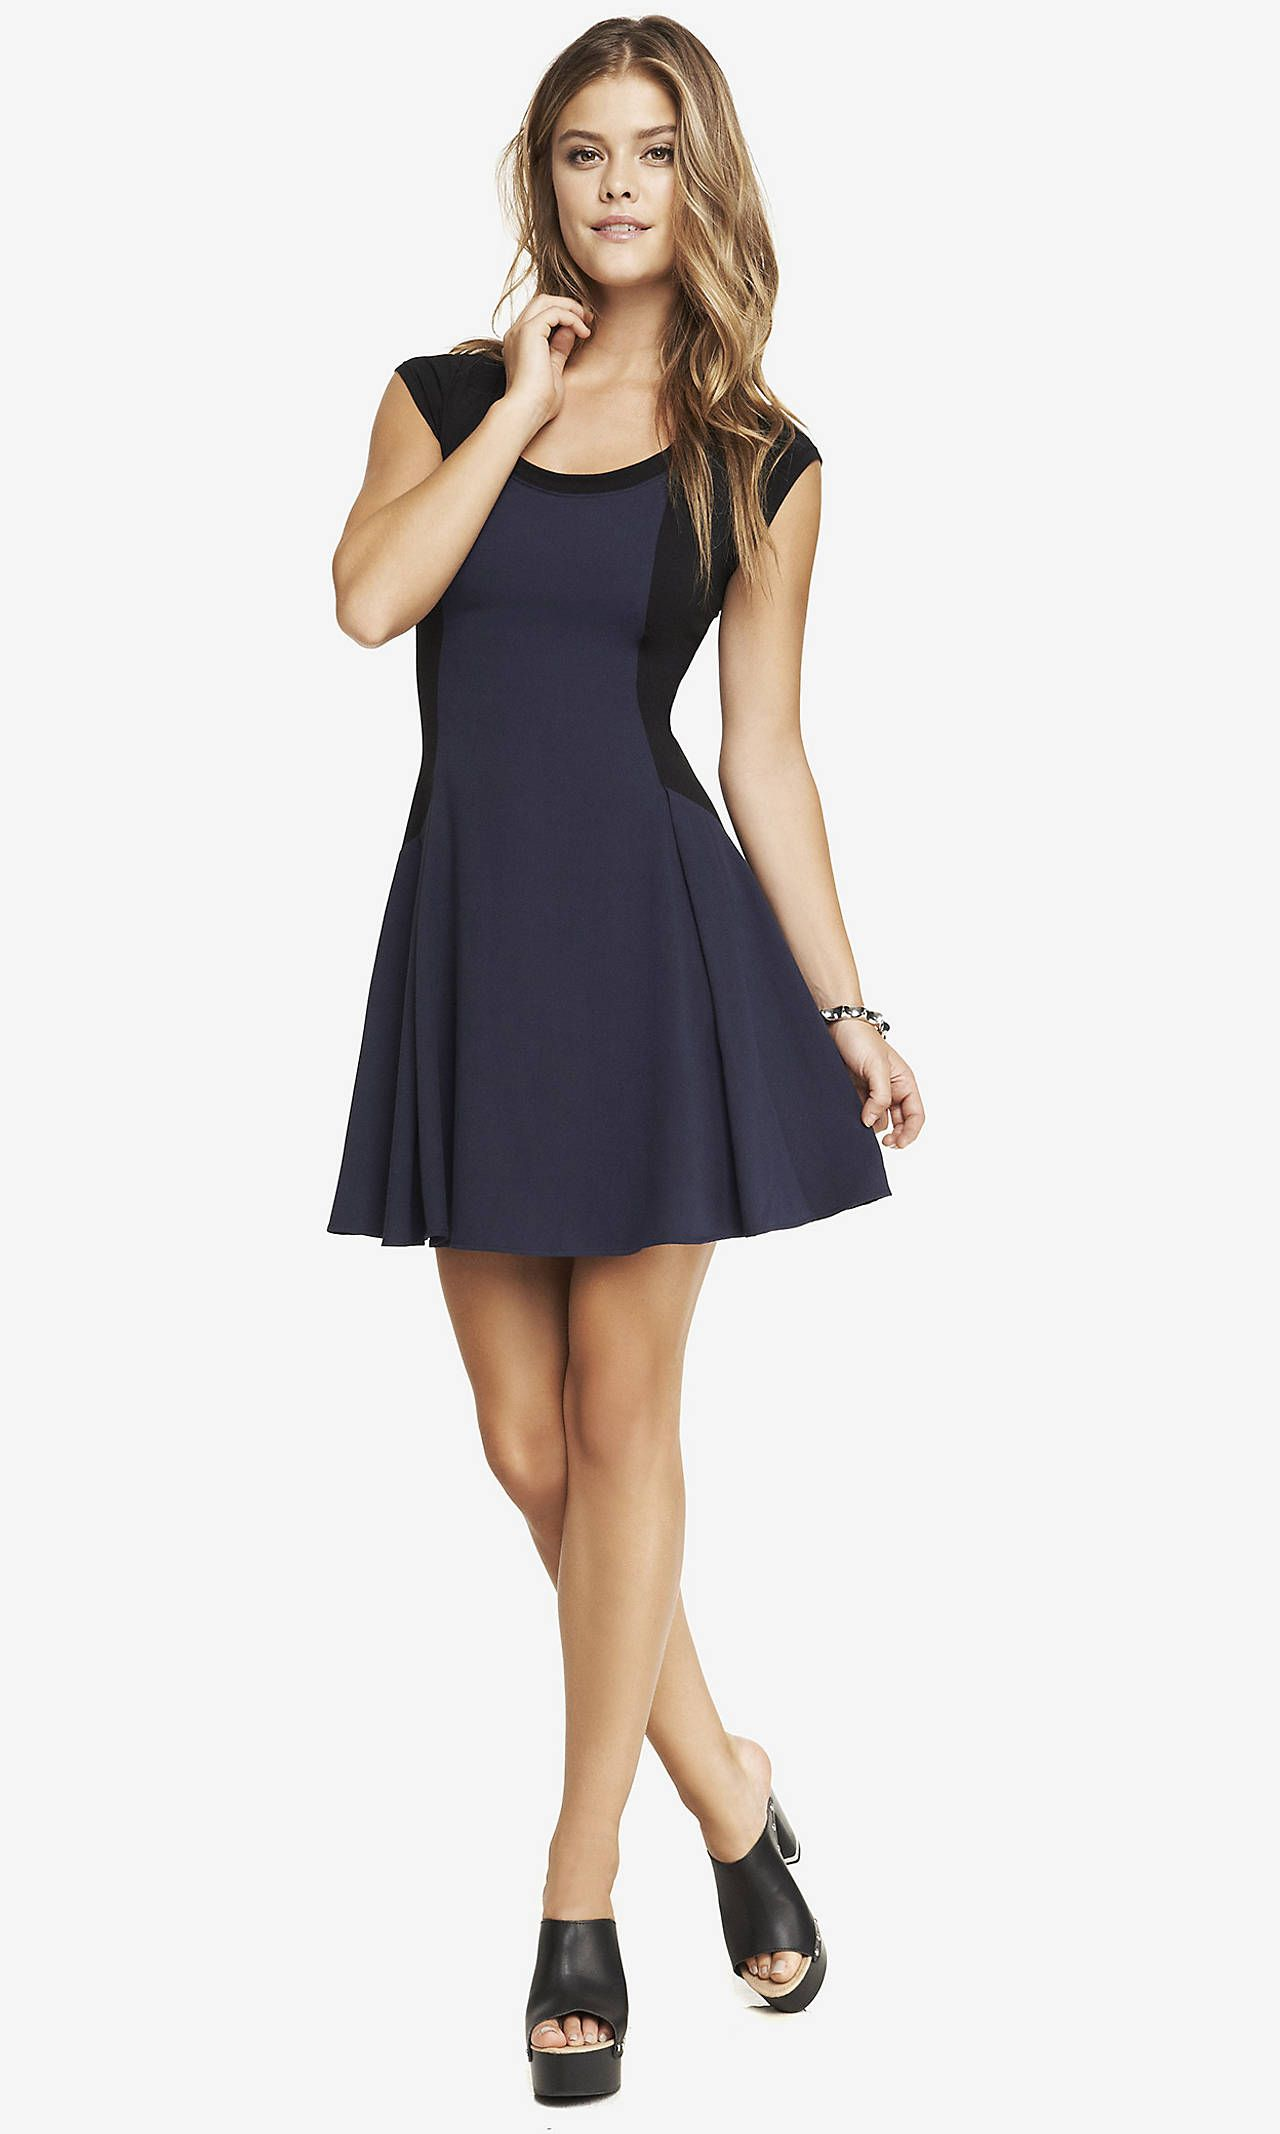 MIXED FABRIC FIT AND FLARE DRESS | Express | Dream Style | Pinterest